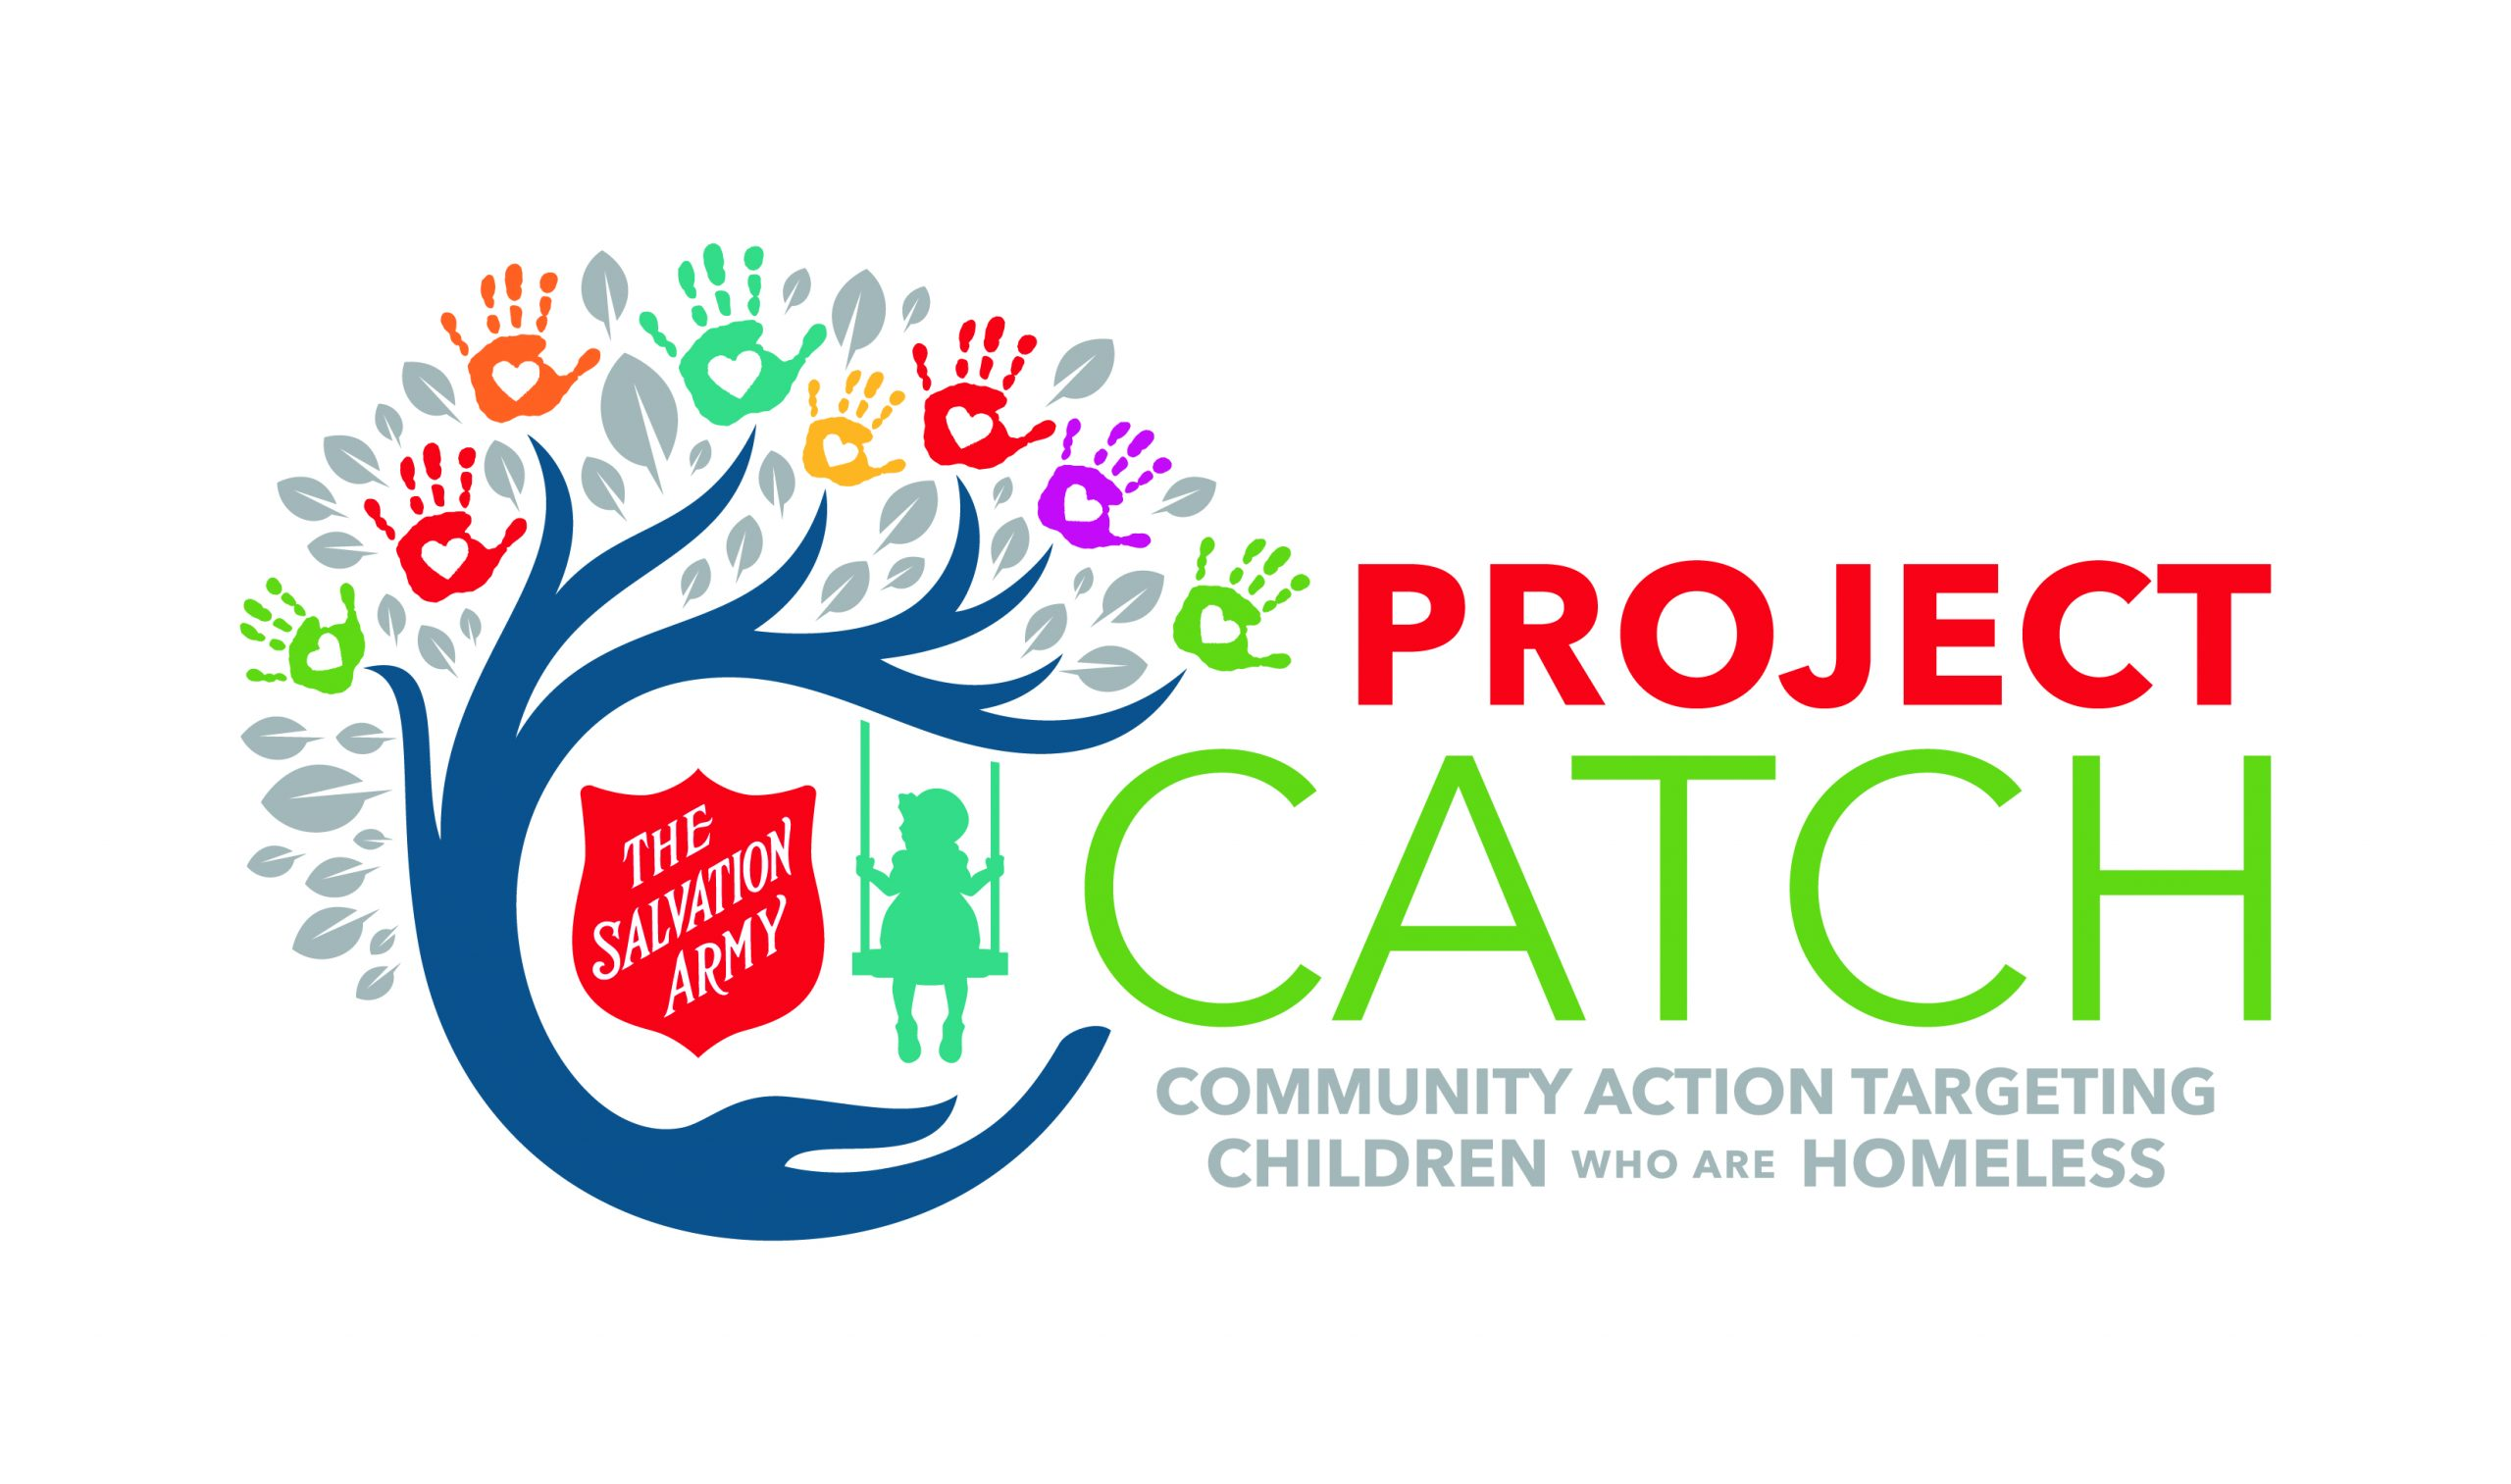 Salvation Army's Project CATCH